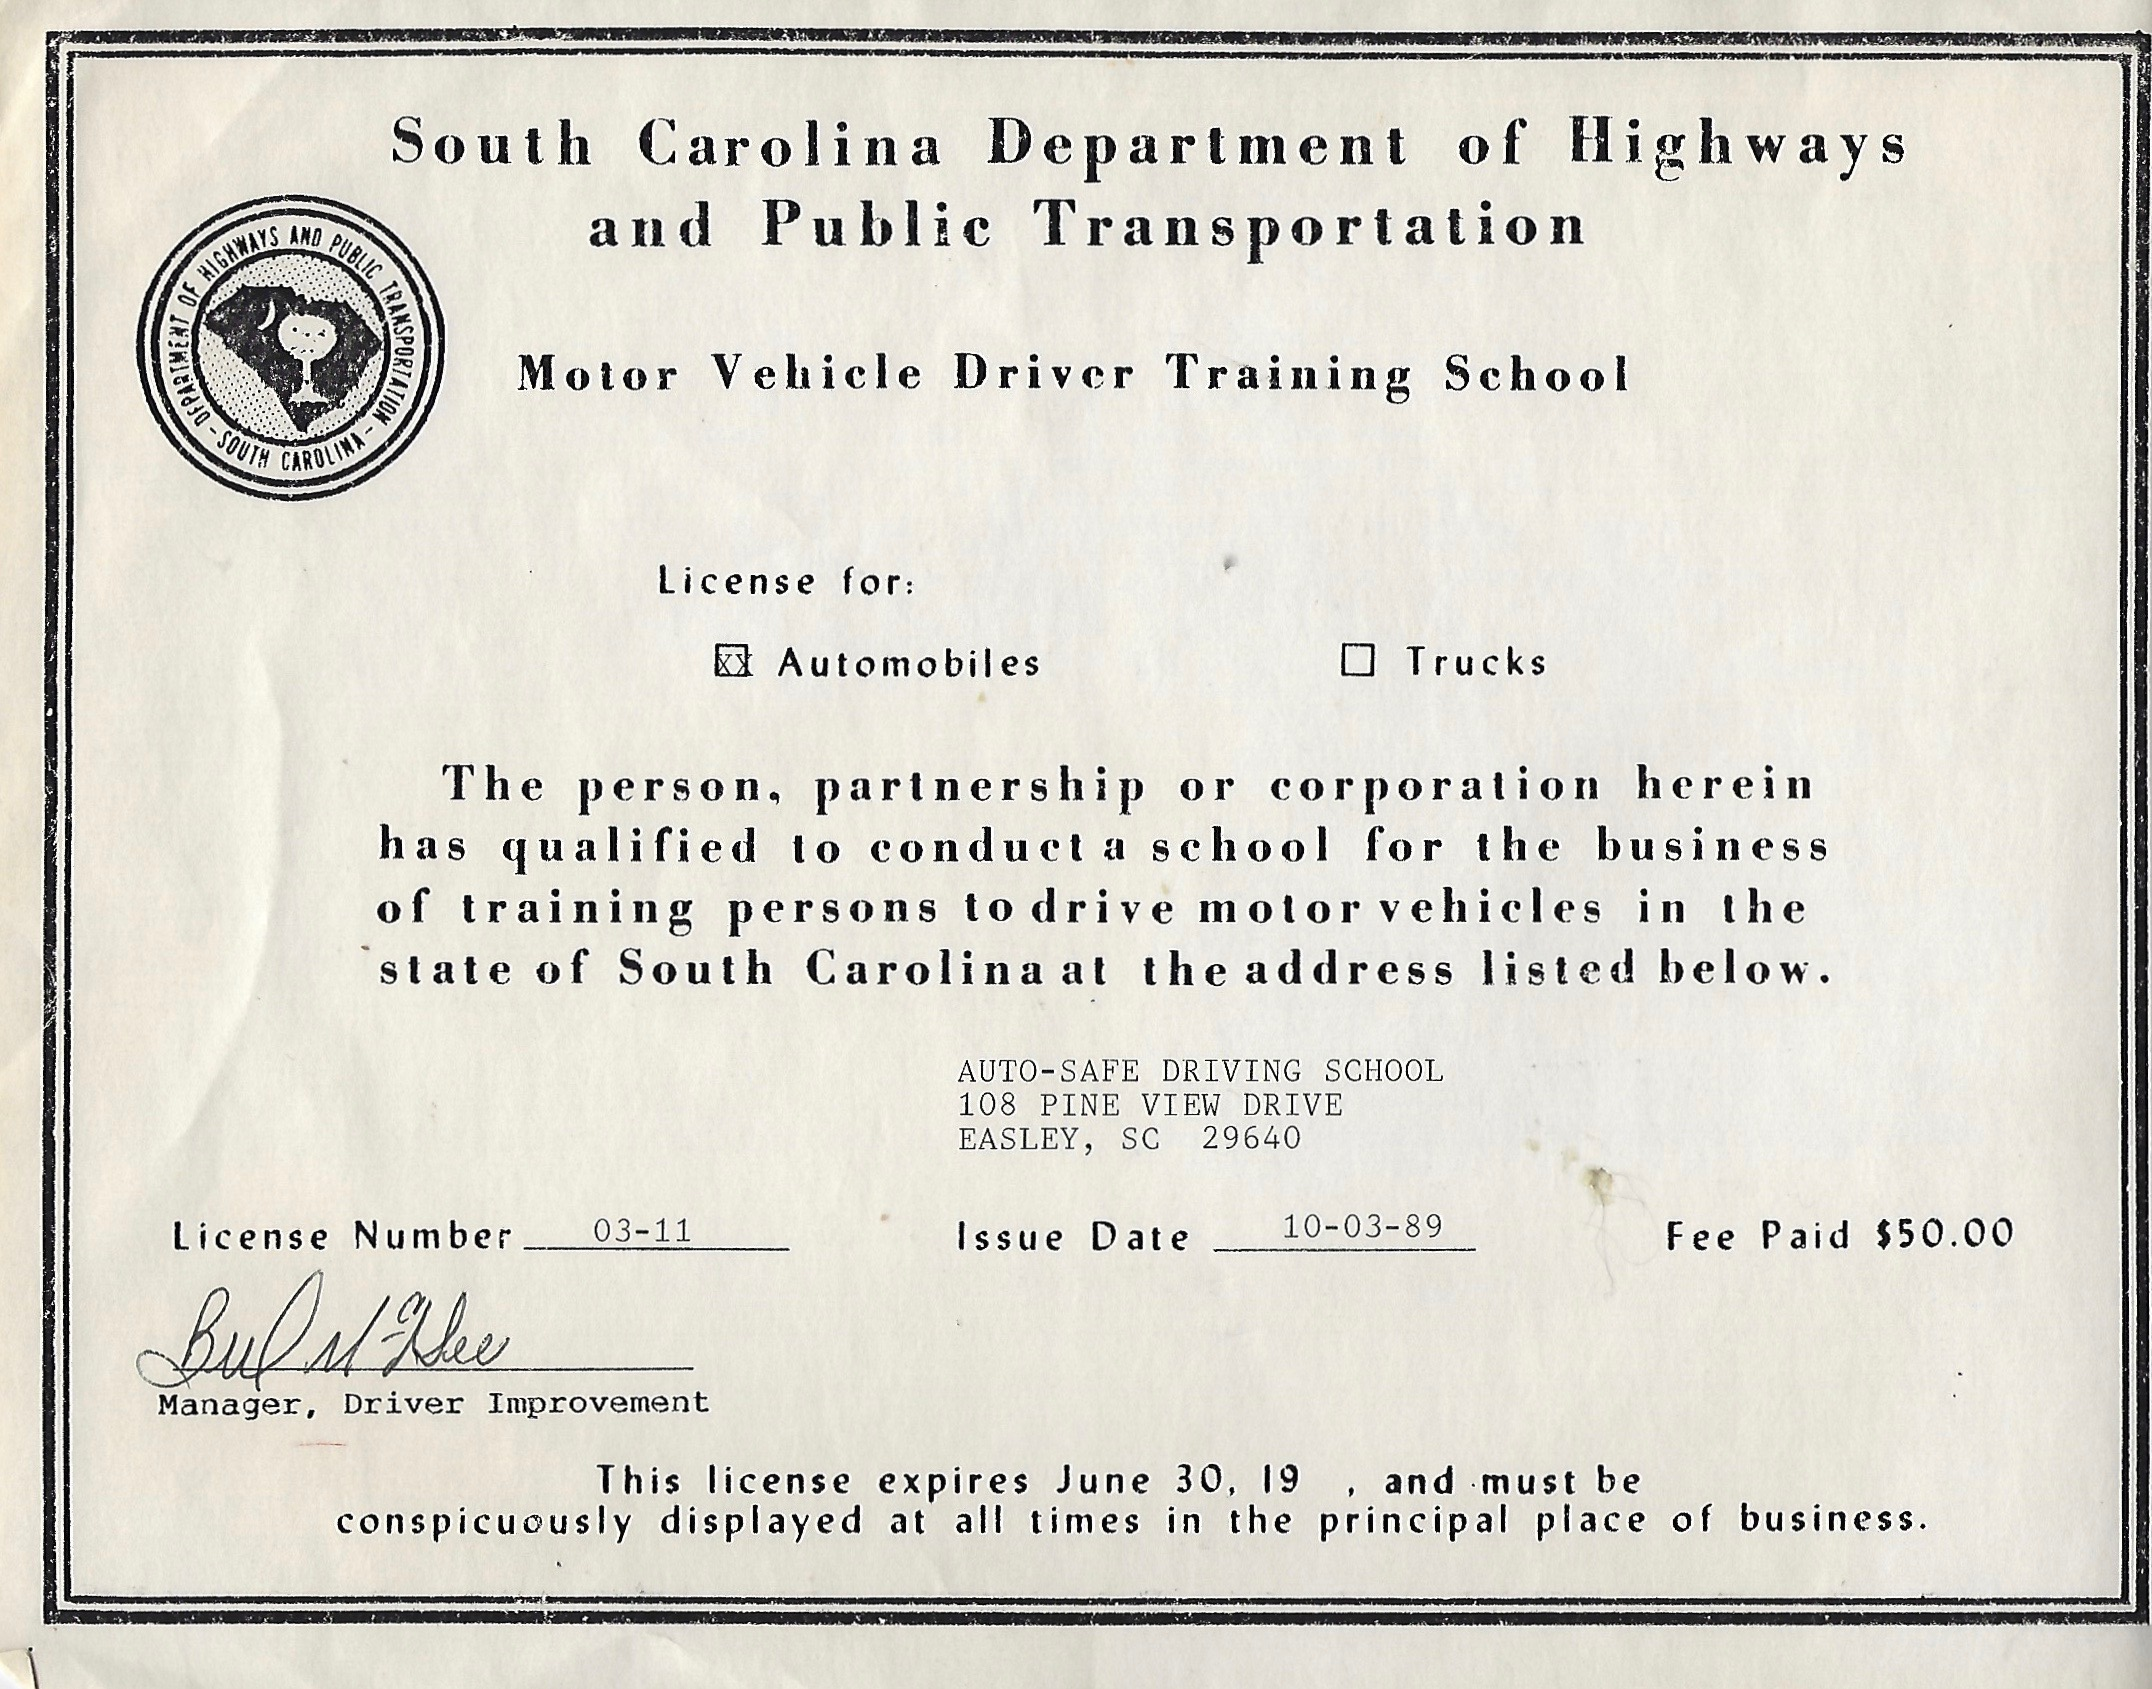 The Original Auto-Safe Certification as a driving school.